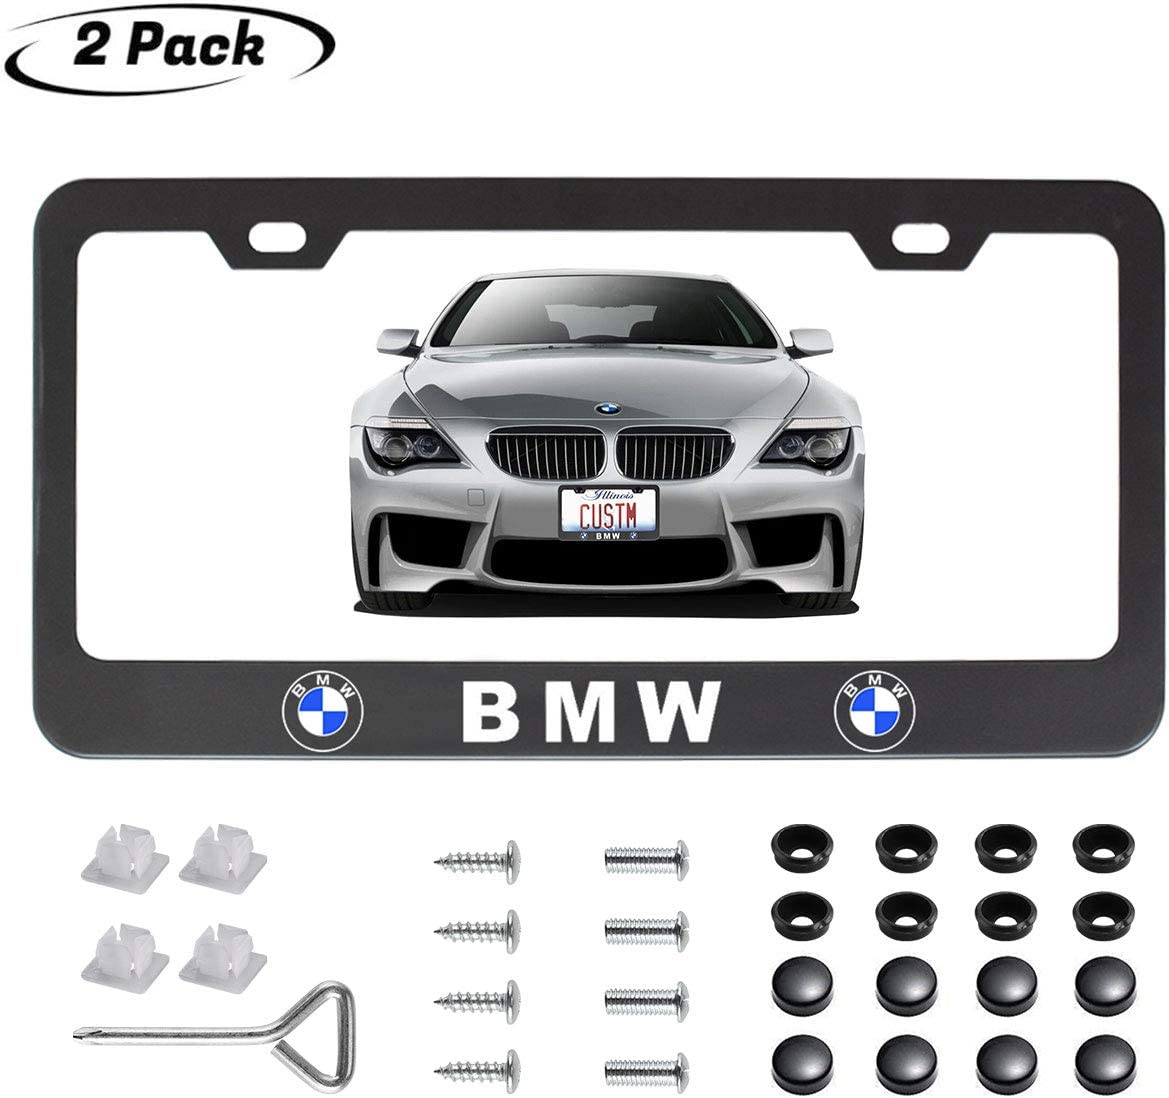 Goodcover 2Pcs BMW Logo License Plate Cover,Stainless Steel License Plate Frame for BMW